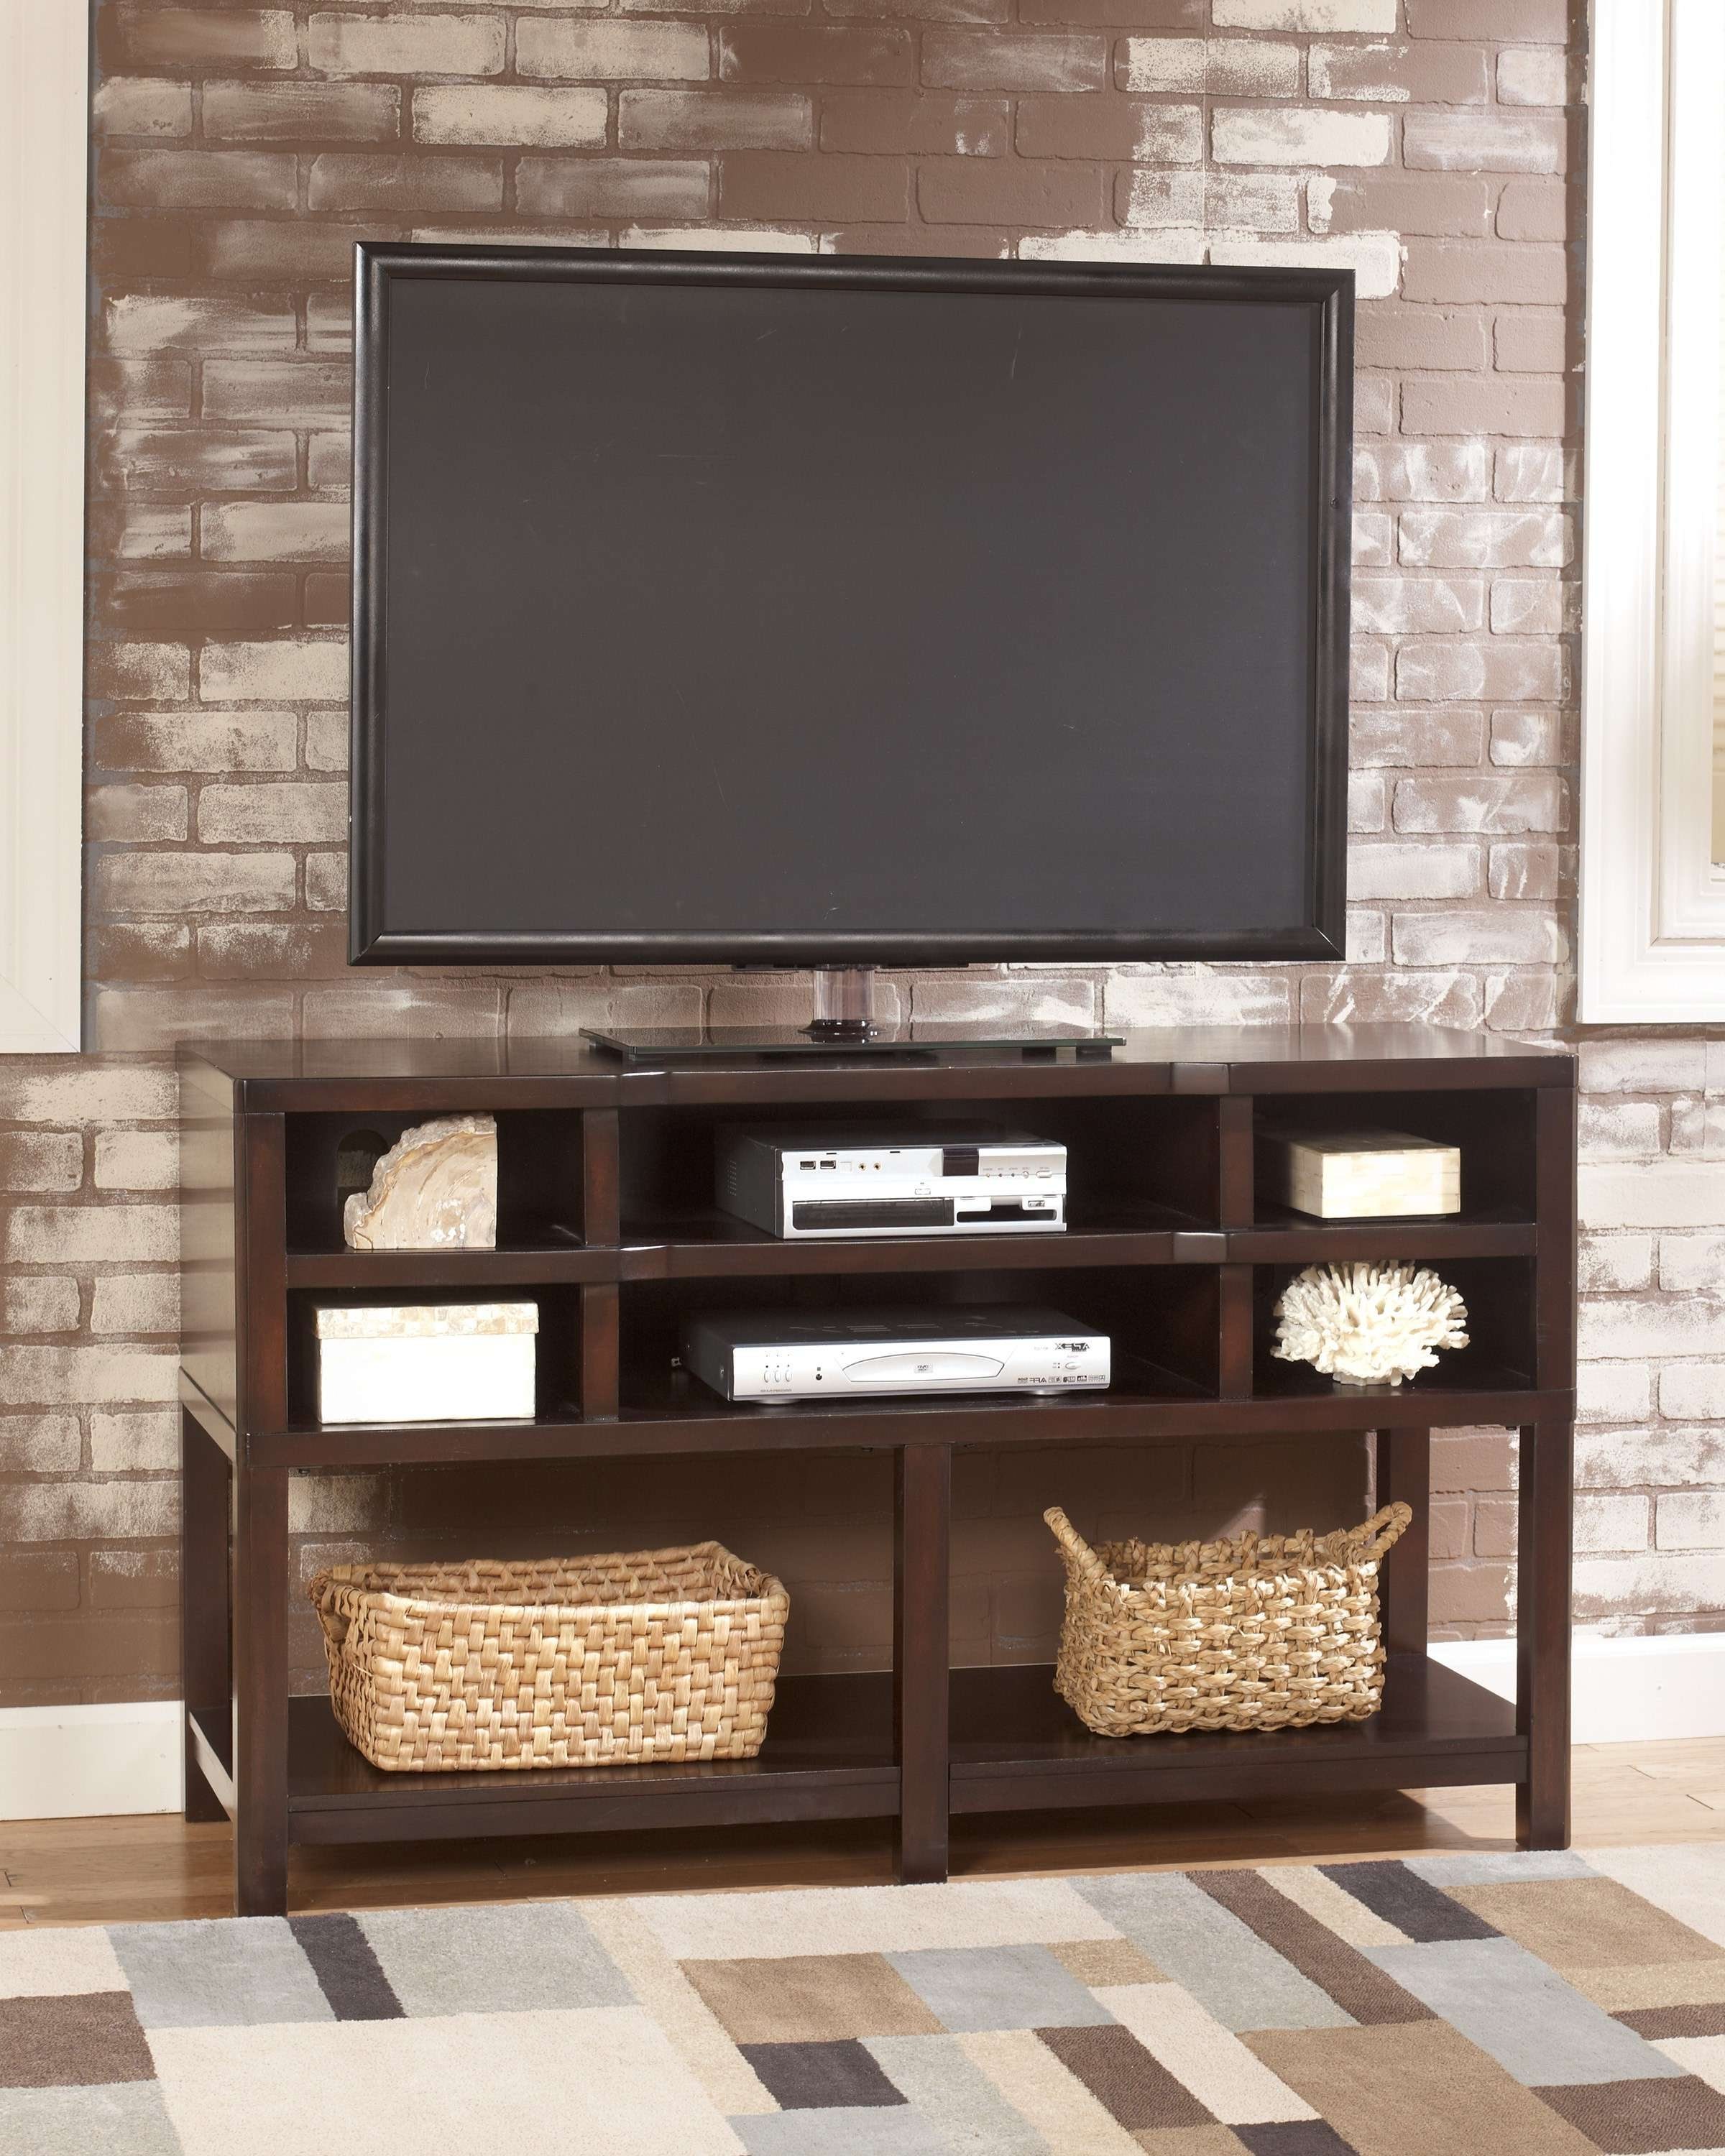 Simple Modern Oak Flat Screen Tv Stand Console Table With Within Narrow Tv Stands For Flat Screens (View 9 of 15)